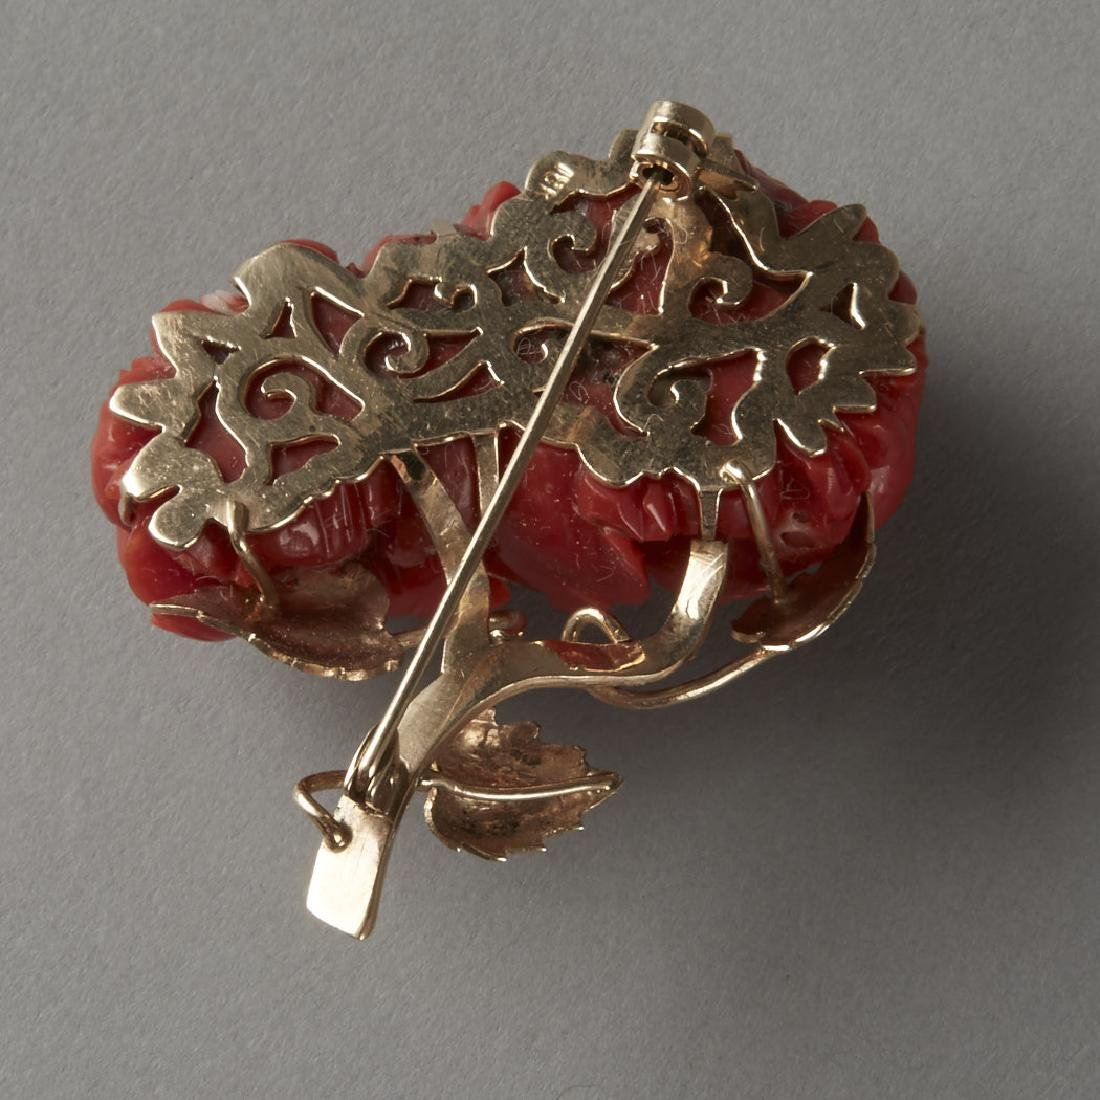 Gold & Coral Chrysanthemum Pin or Brooch - 2